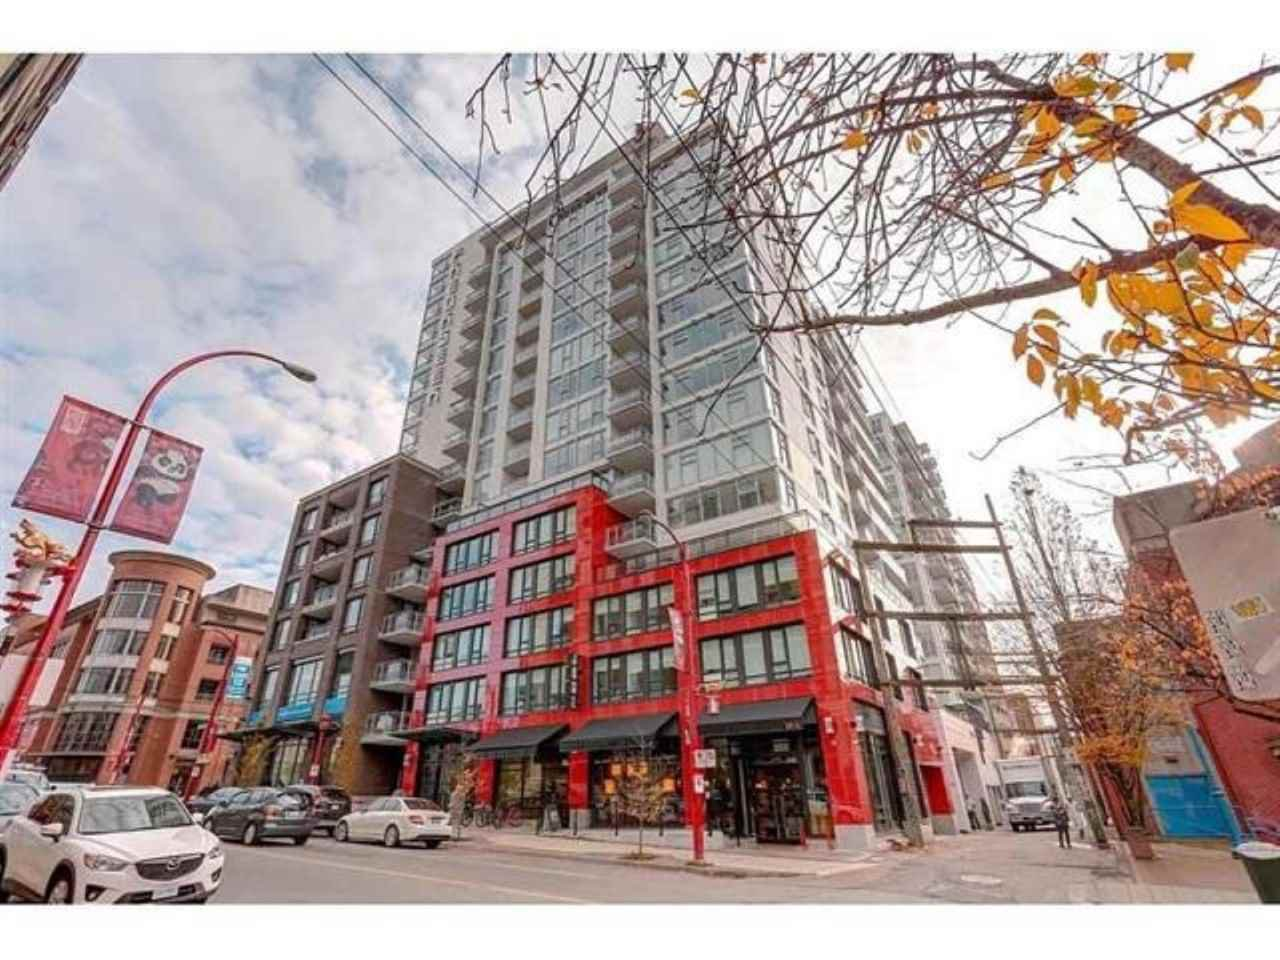 """Main Photo: 716 188 KEEFER Street in Vancouver: Downtown VE Condo for sale in """"188 Keefer"""" (Vancouver East)  : MLS®# R2511640"""